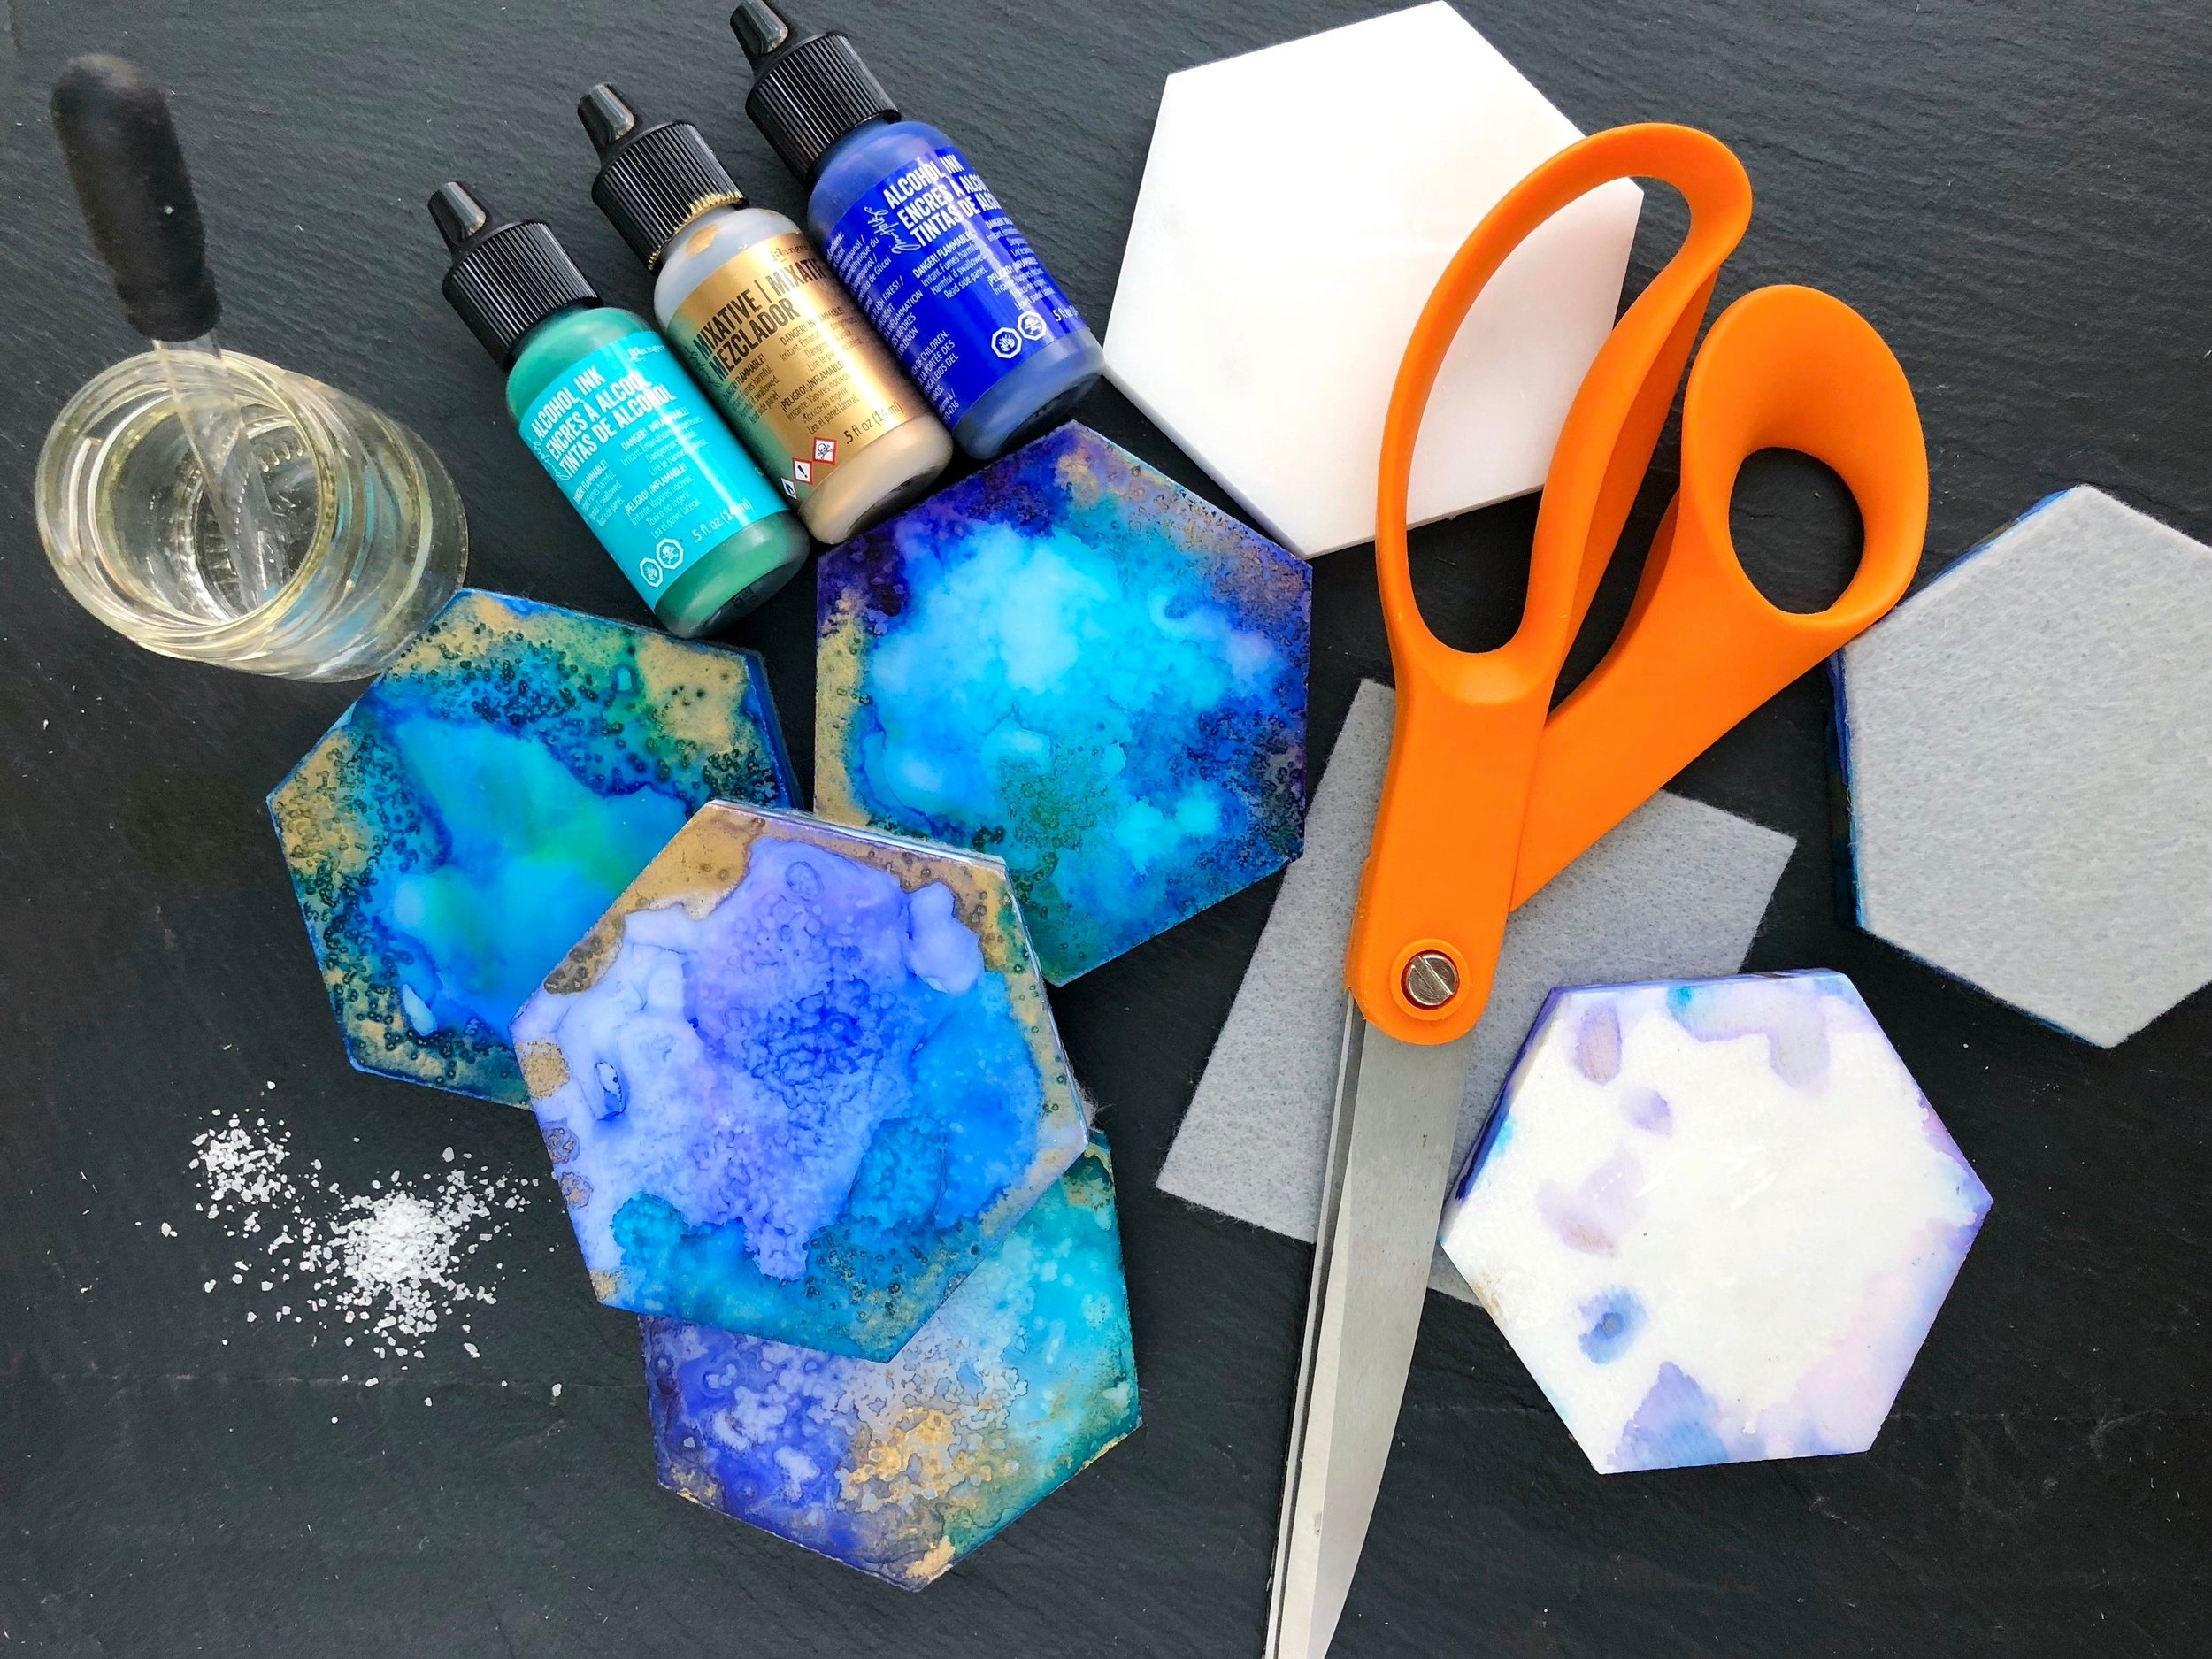 DIY Alcohol Ink Hexagon Tile Coasters #diycoasters #homedepot #alcoholink #alcoholinkcraft #summercocktails #summerdiy #marblecoasters #coasters #coastersdiy #diycrafts #craftstodowhenyourebored #rubbingalcohol #homedecor #homeentertaining #coffeetable